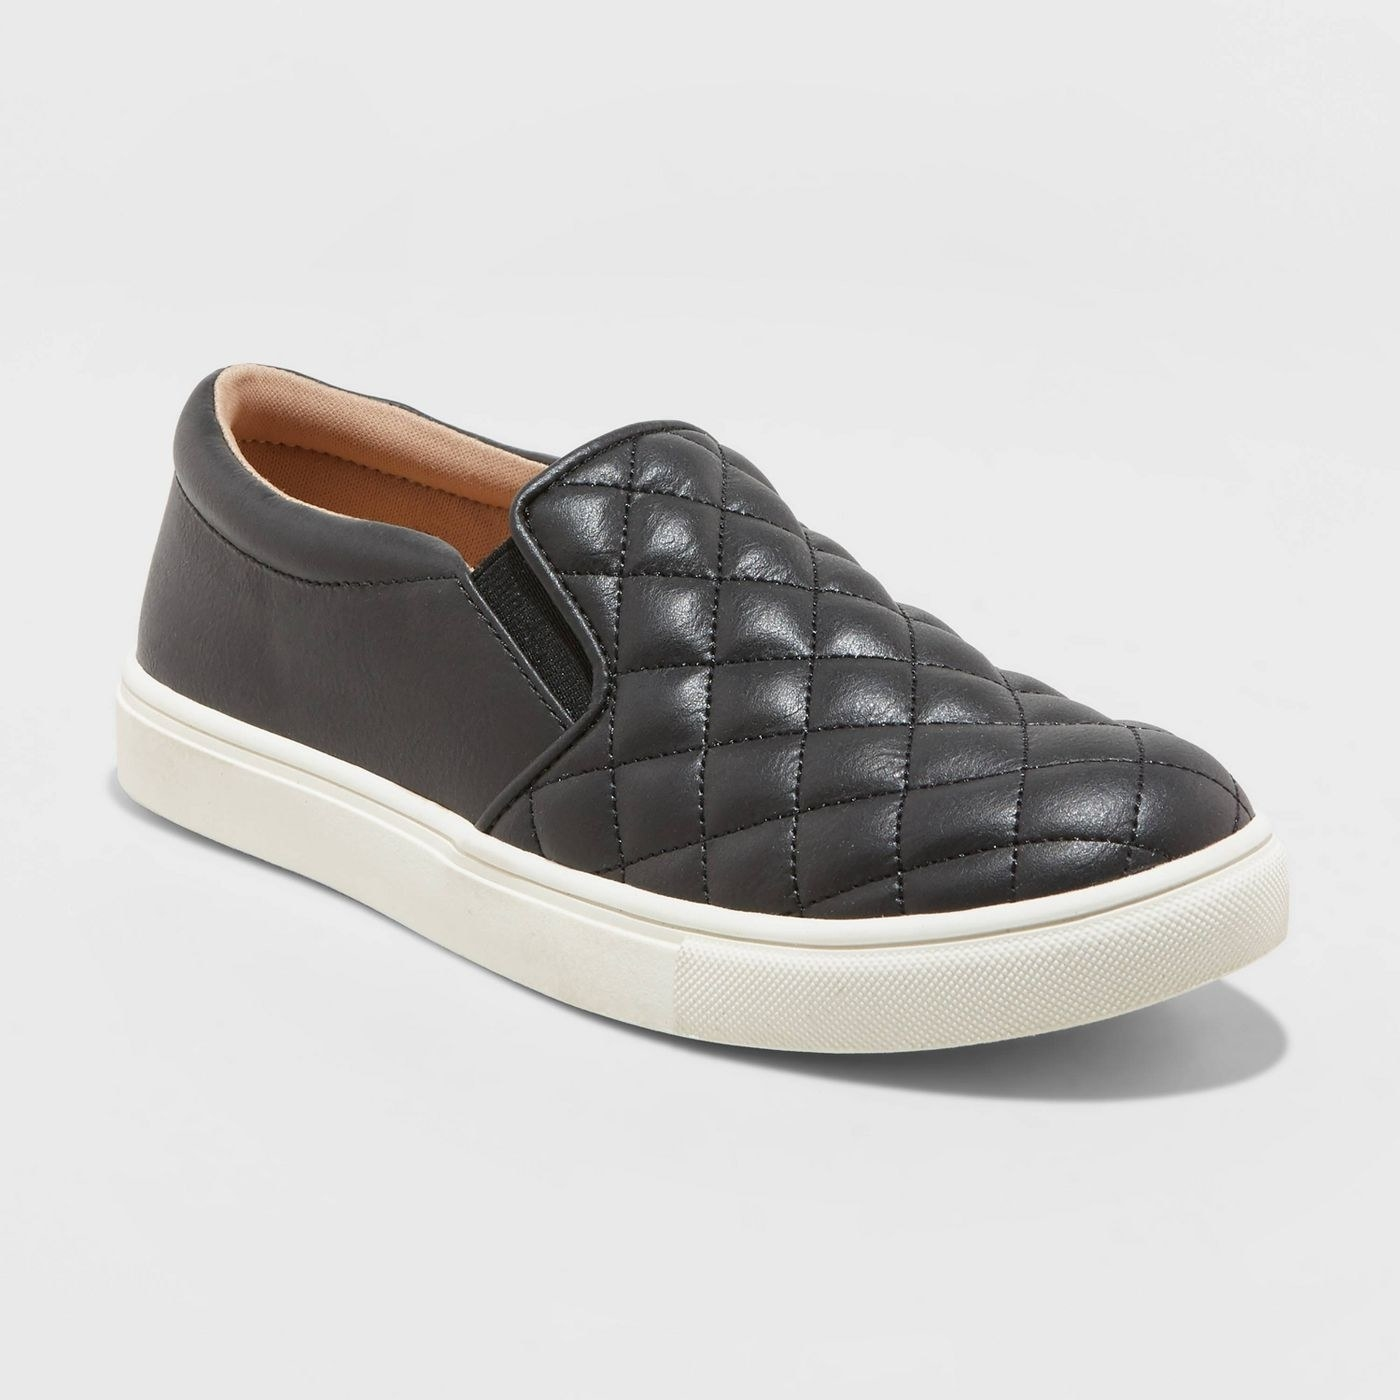 a quilted black slip-on sneaker